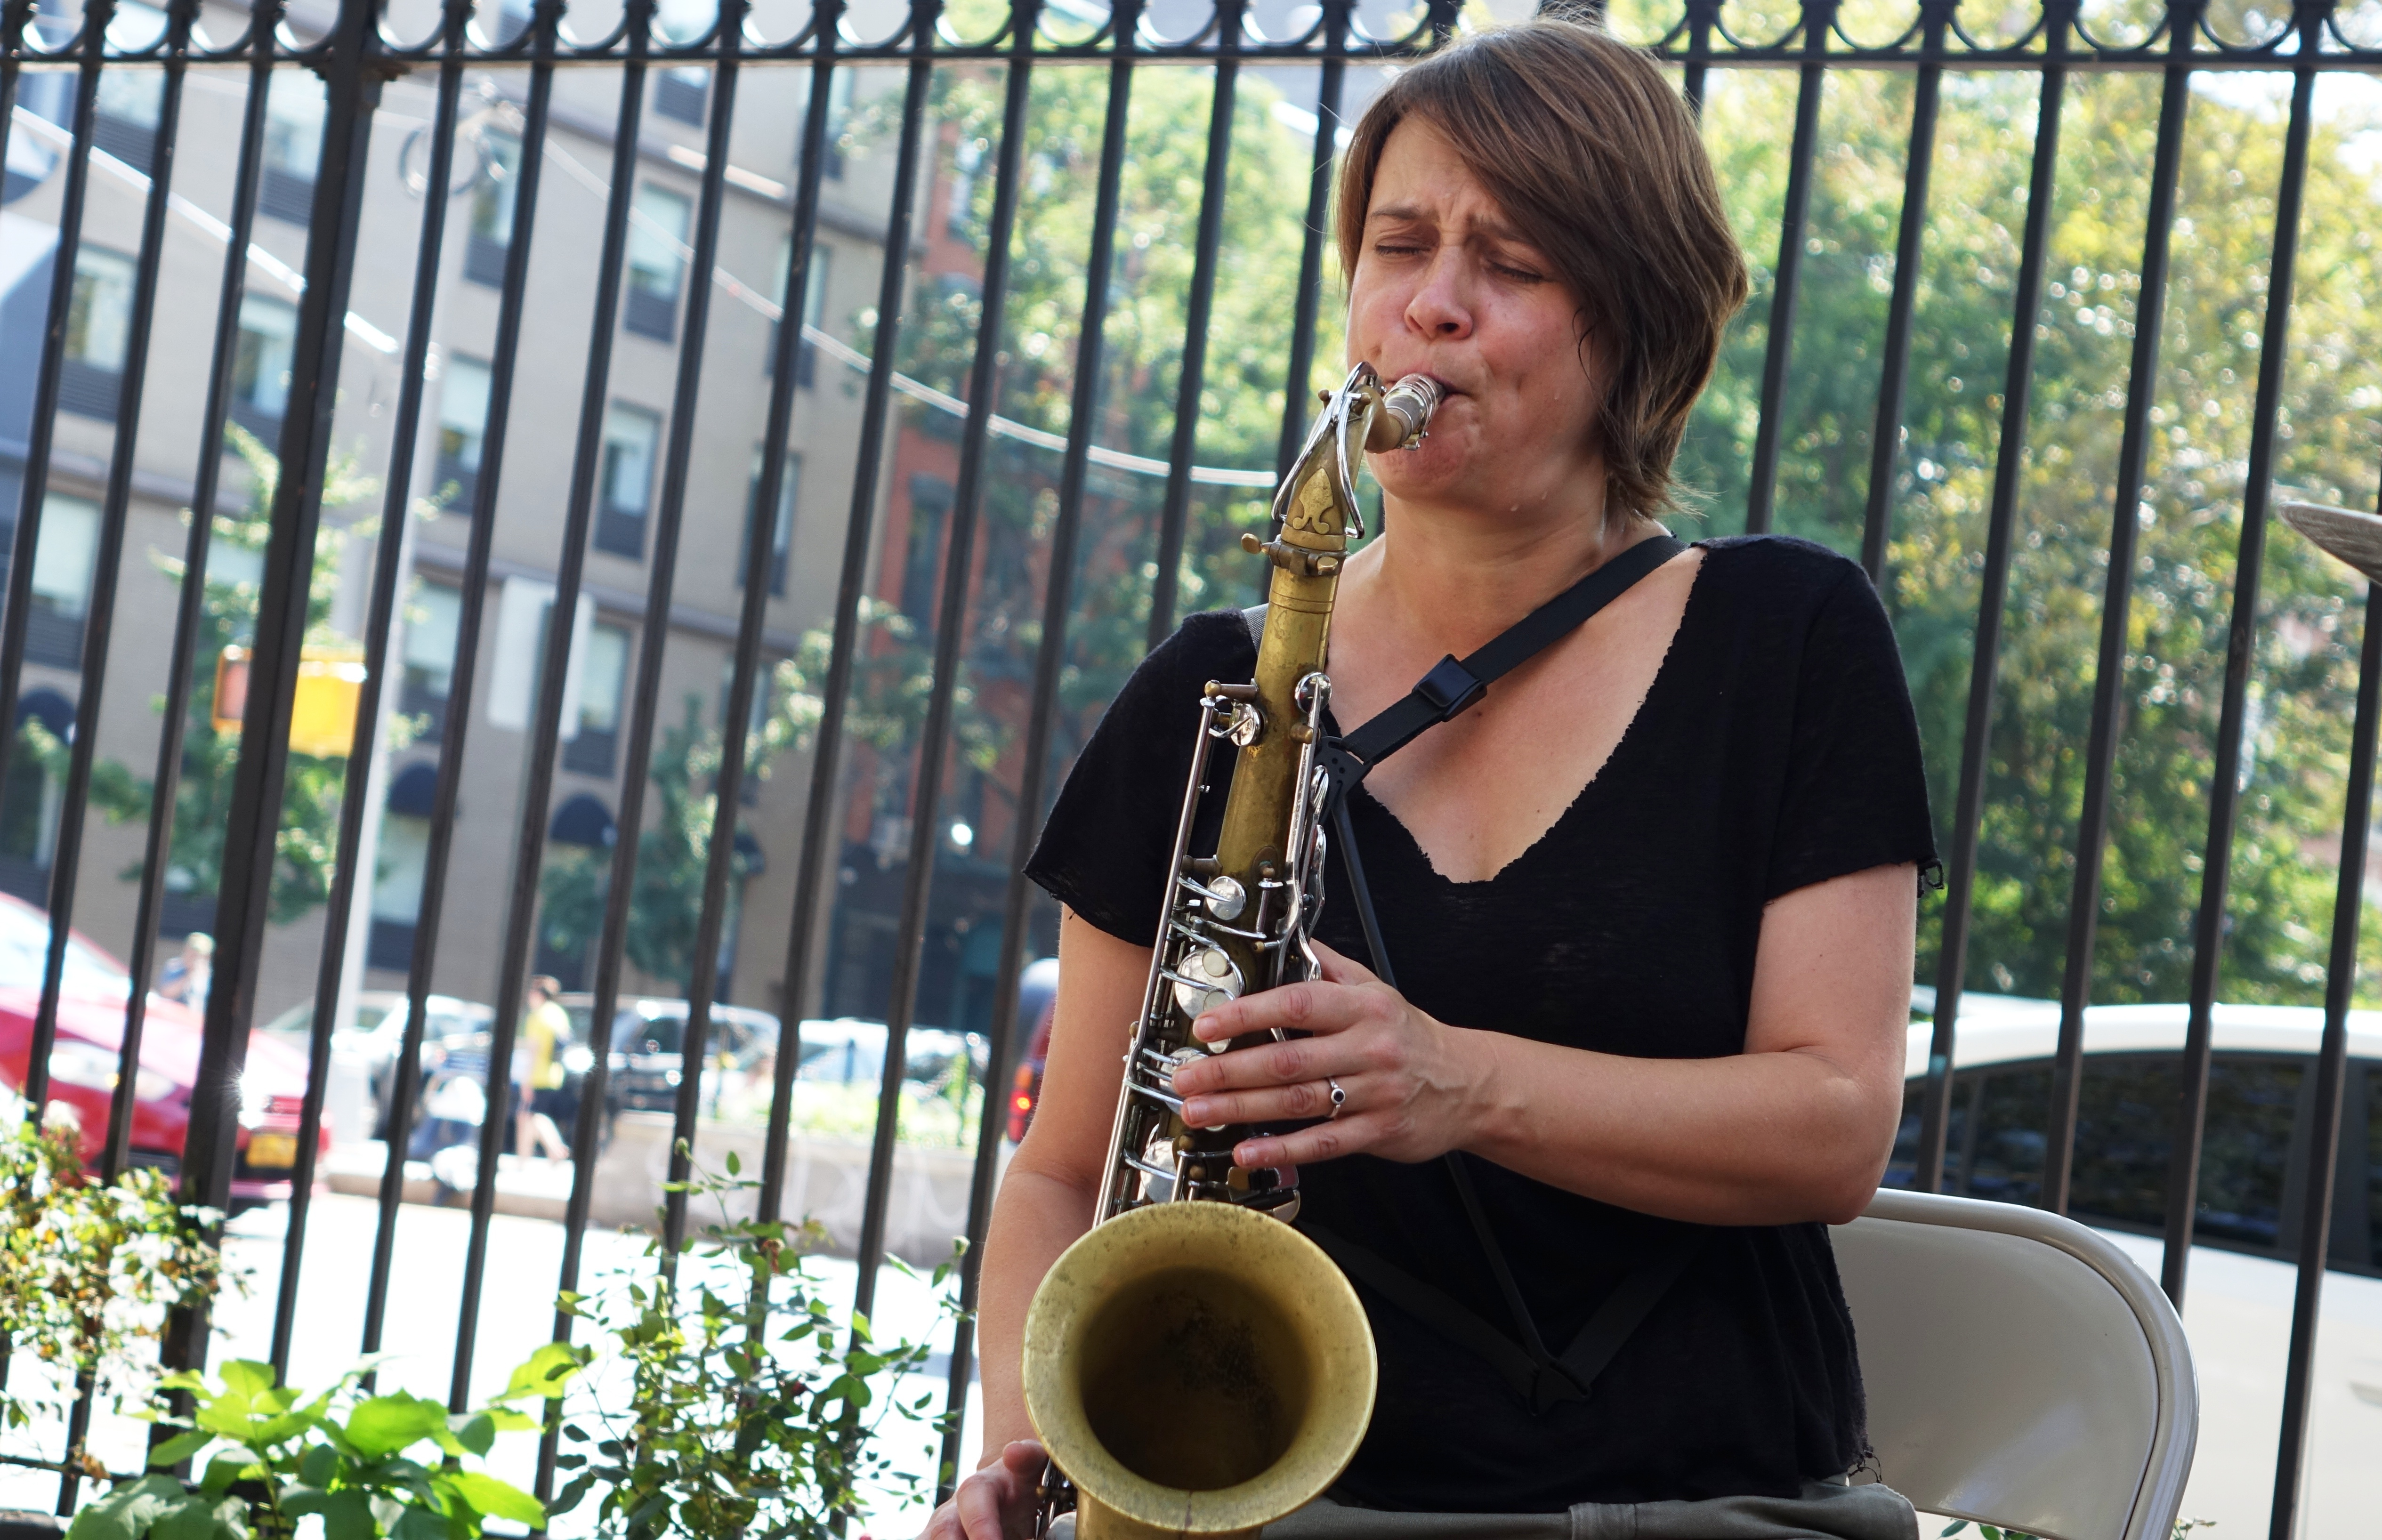 Ingrid Laubrock at First Street Green, NYC in September 2017